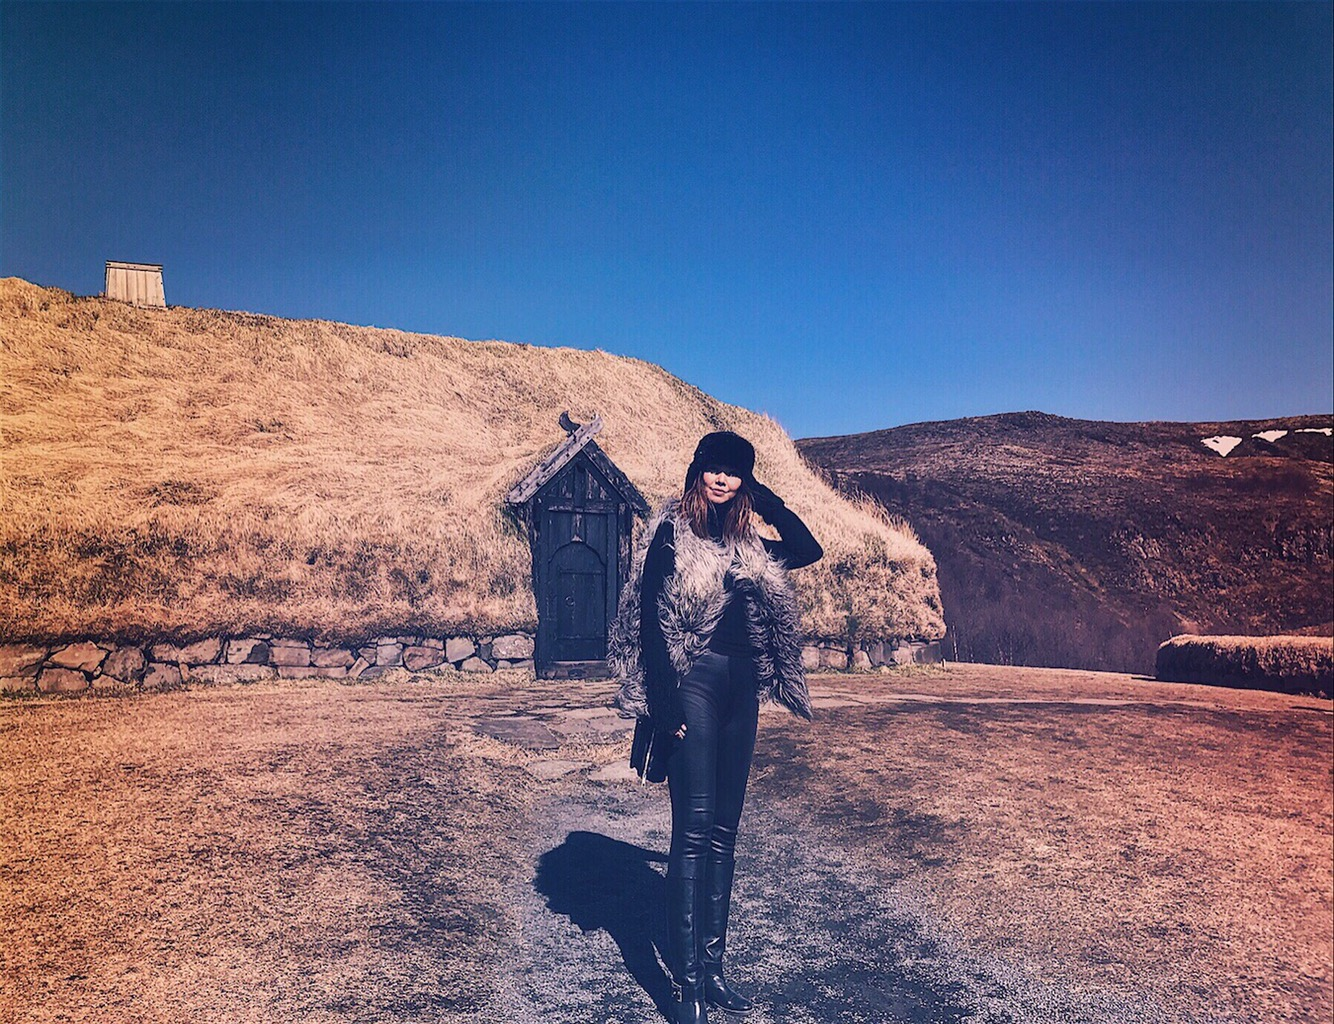 Bianca Valerio Game of Thrones Iceland